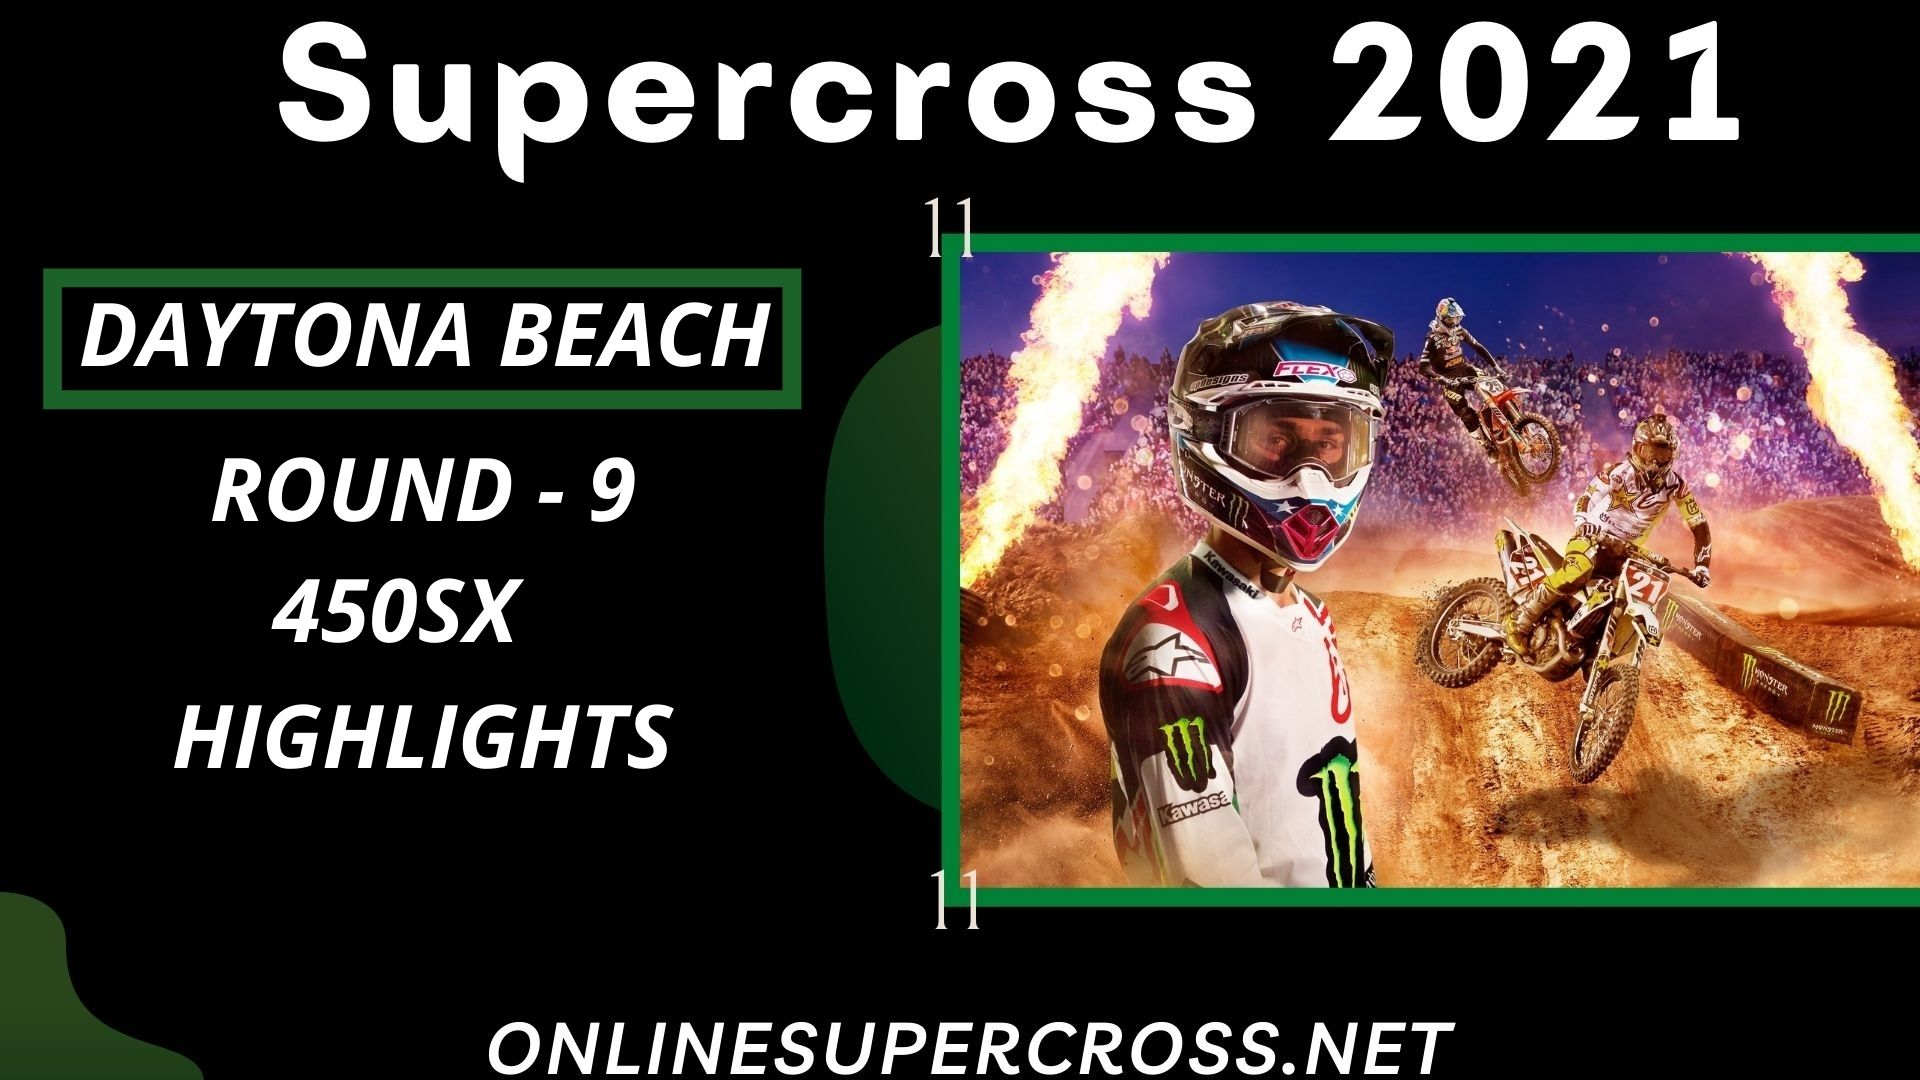 Daytona Beach Round 9 Supercross 450SX Highlights 2021